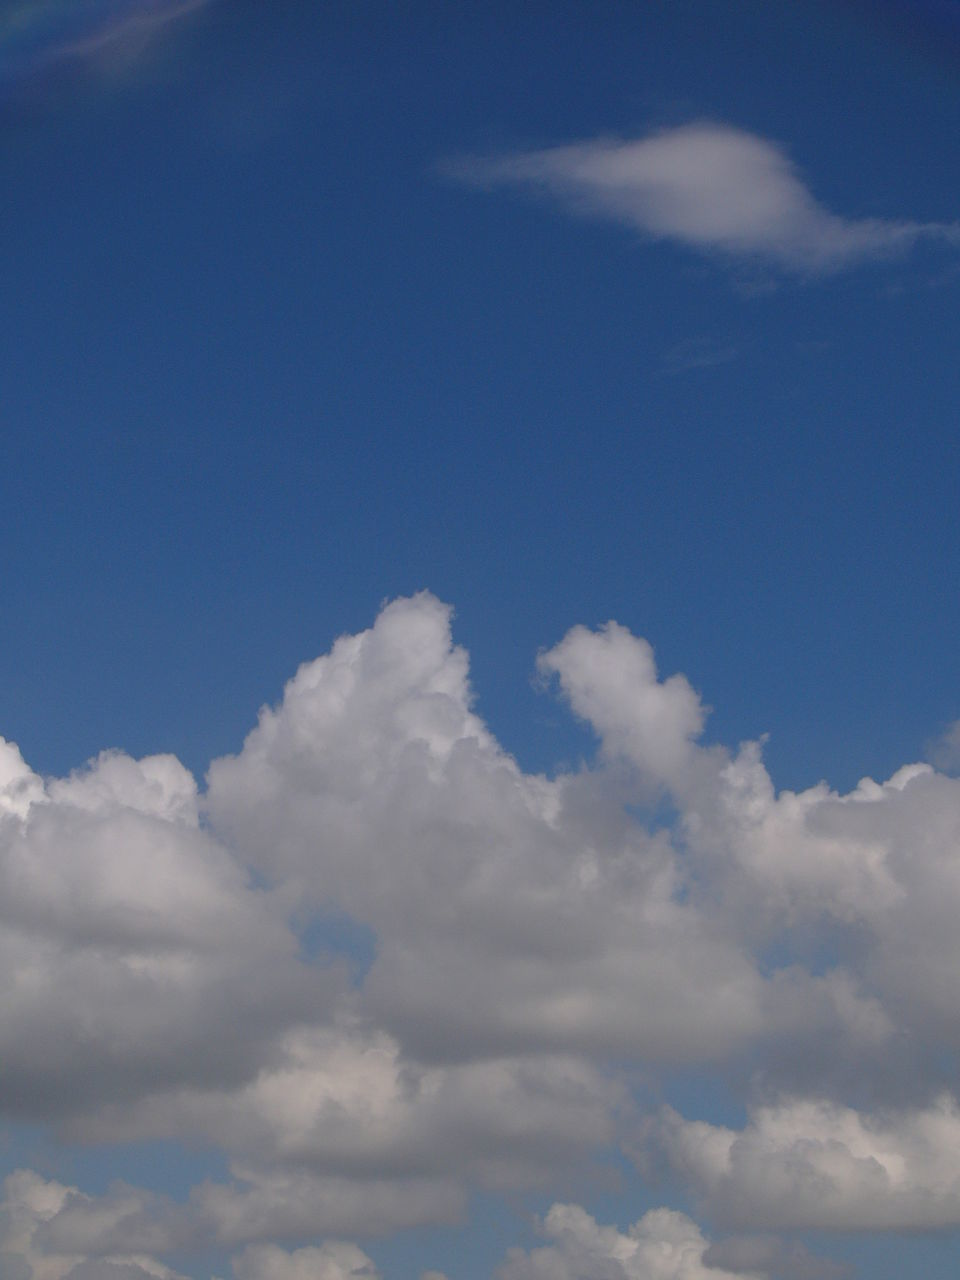 cloud - sky, sky, beauty in nature, nature, blue, sky only, cloudscape, tranquility, scenics, majestic, backgrounds, softness, low angle view, tranquil scene, no people, outdoors, day, full frame